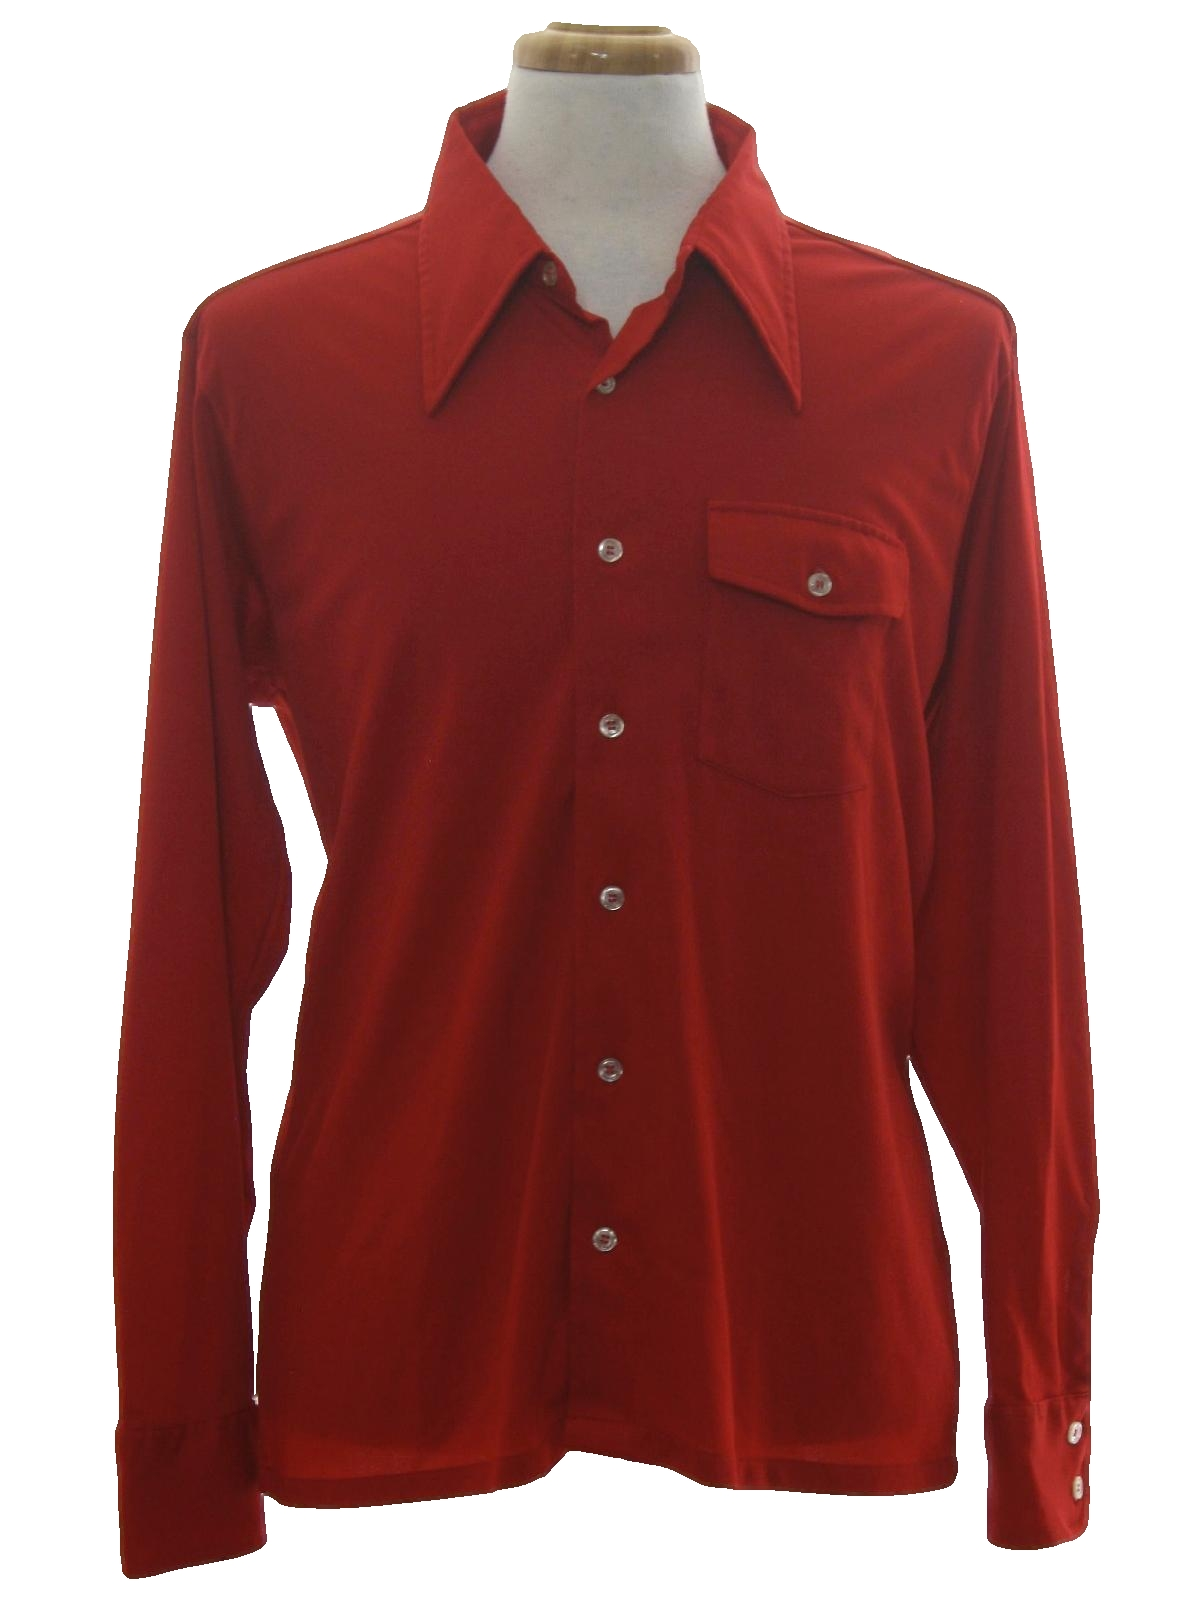 Donegal 70 39 s vintage disco shirt 70s donegal mens red for Solid color button up shirts